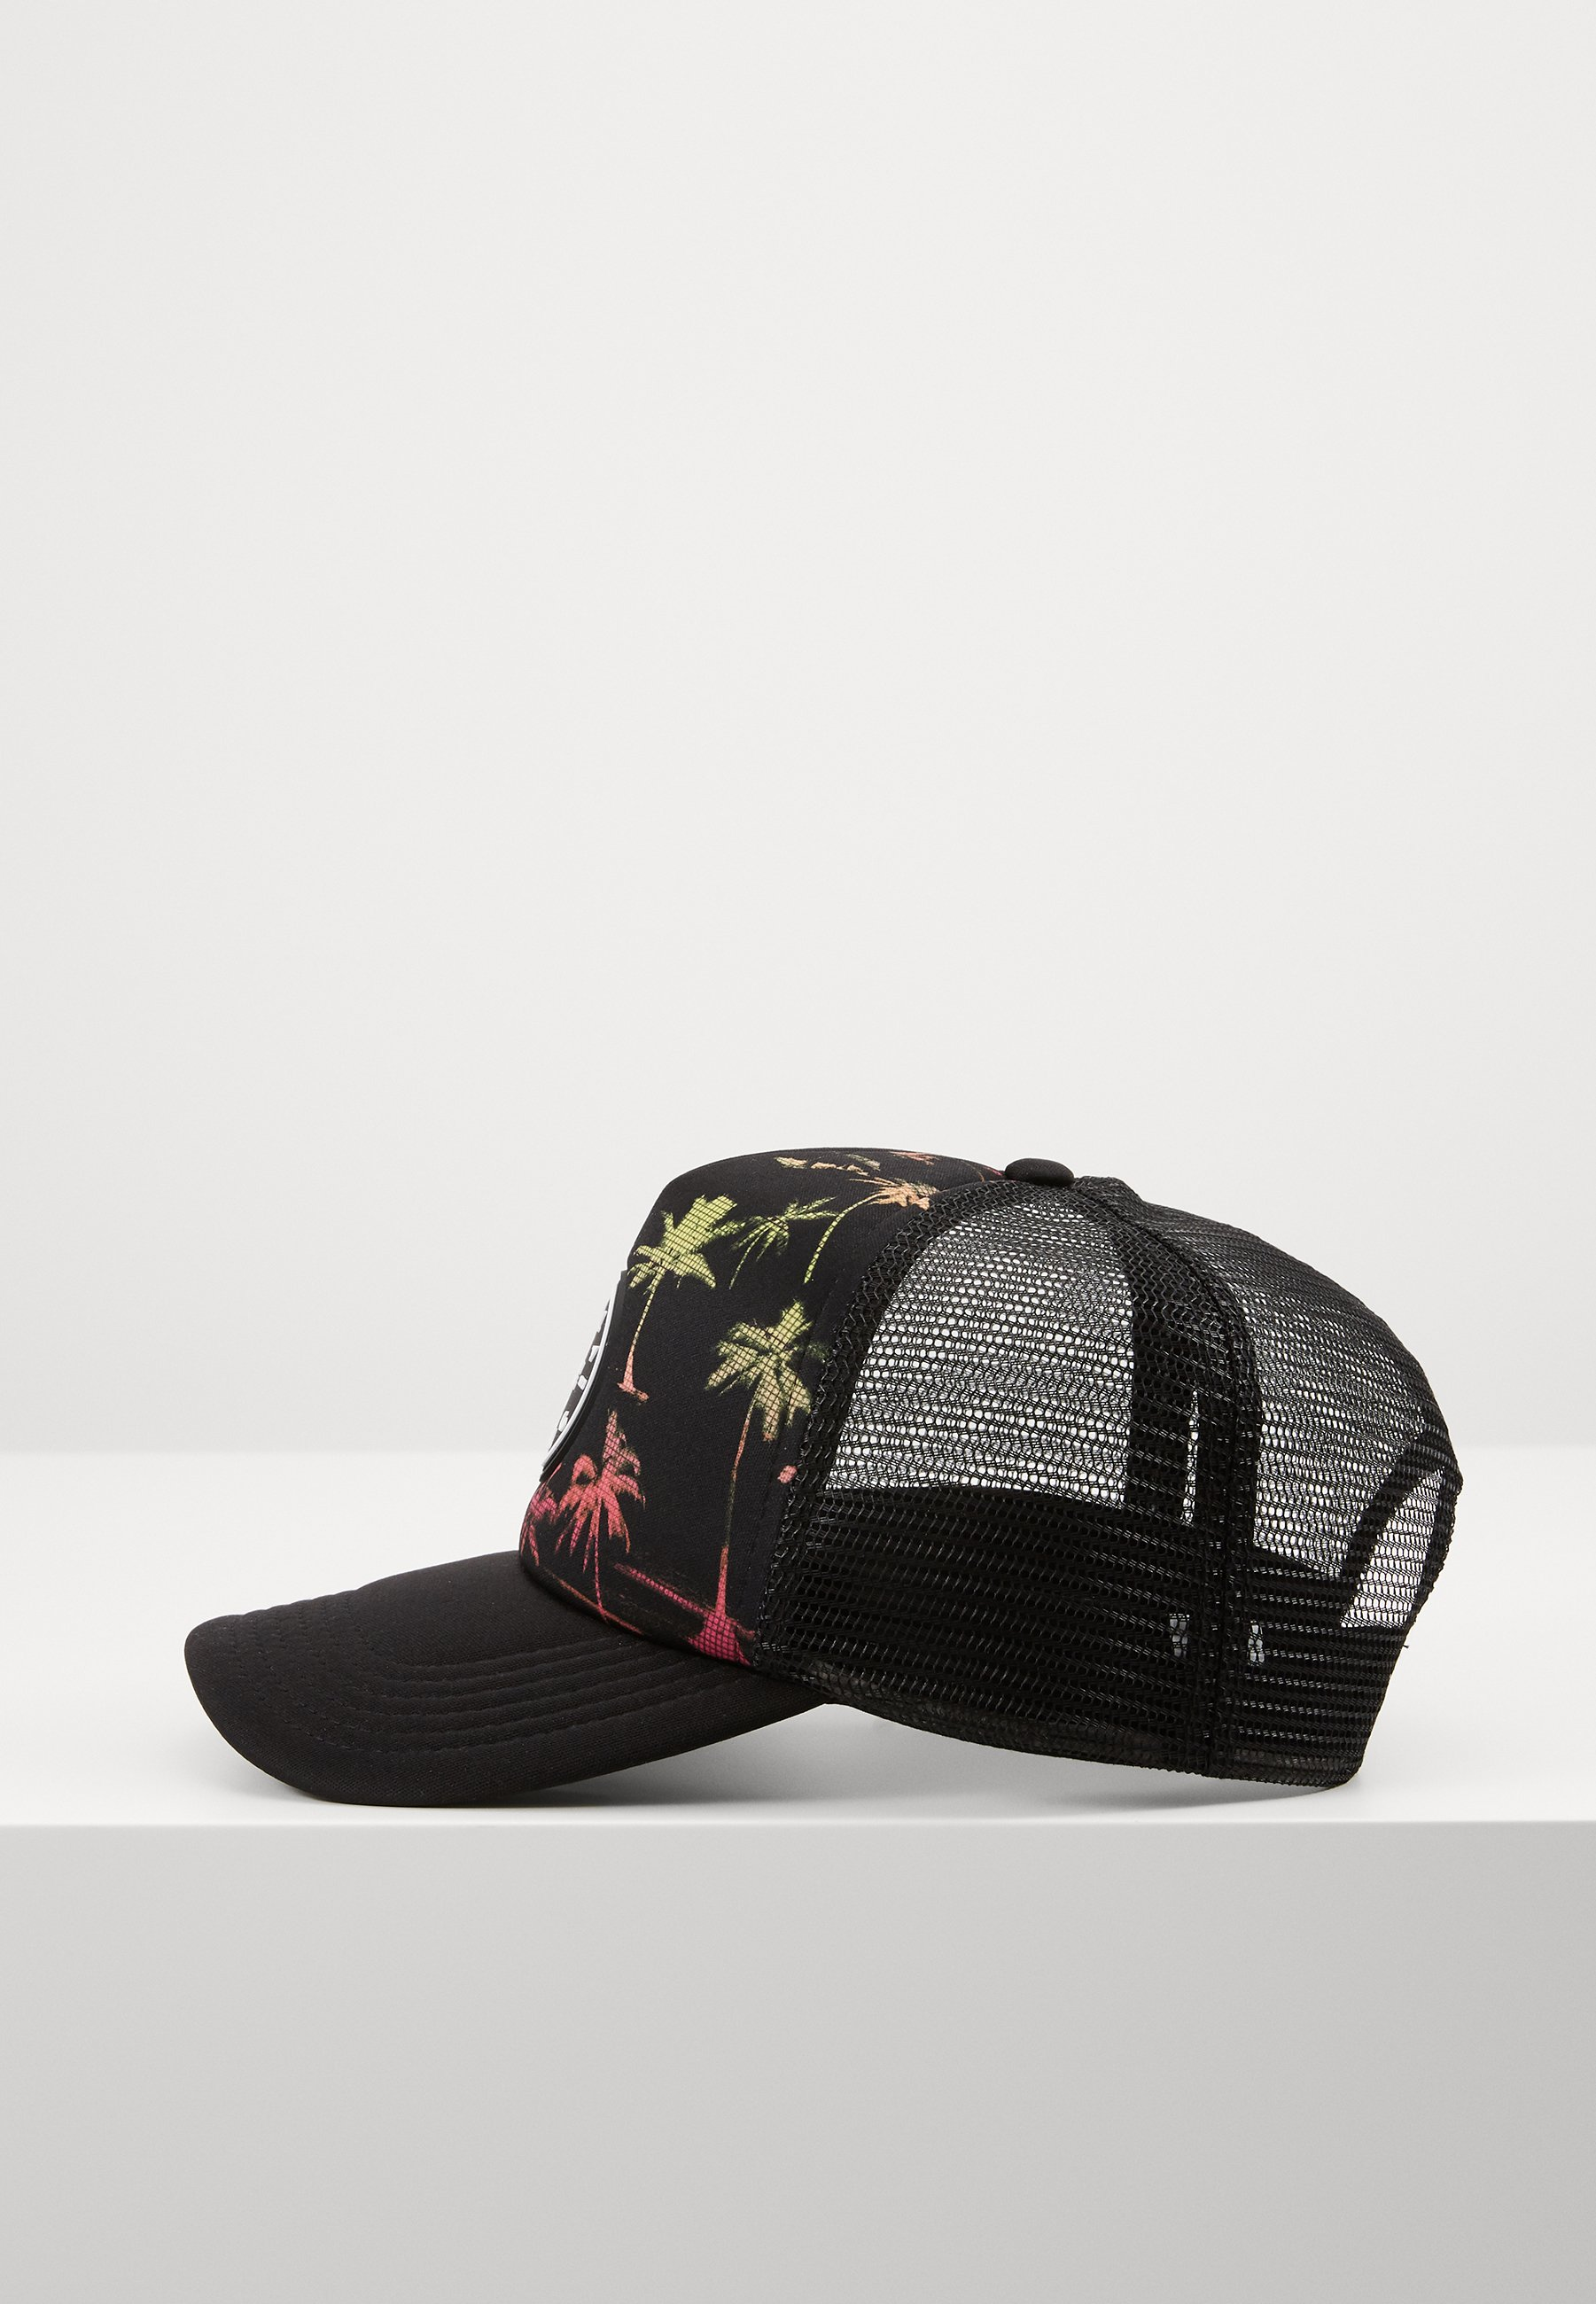 Billabong Scope Trucker - Cap Neon/mehrfarbig